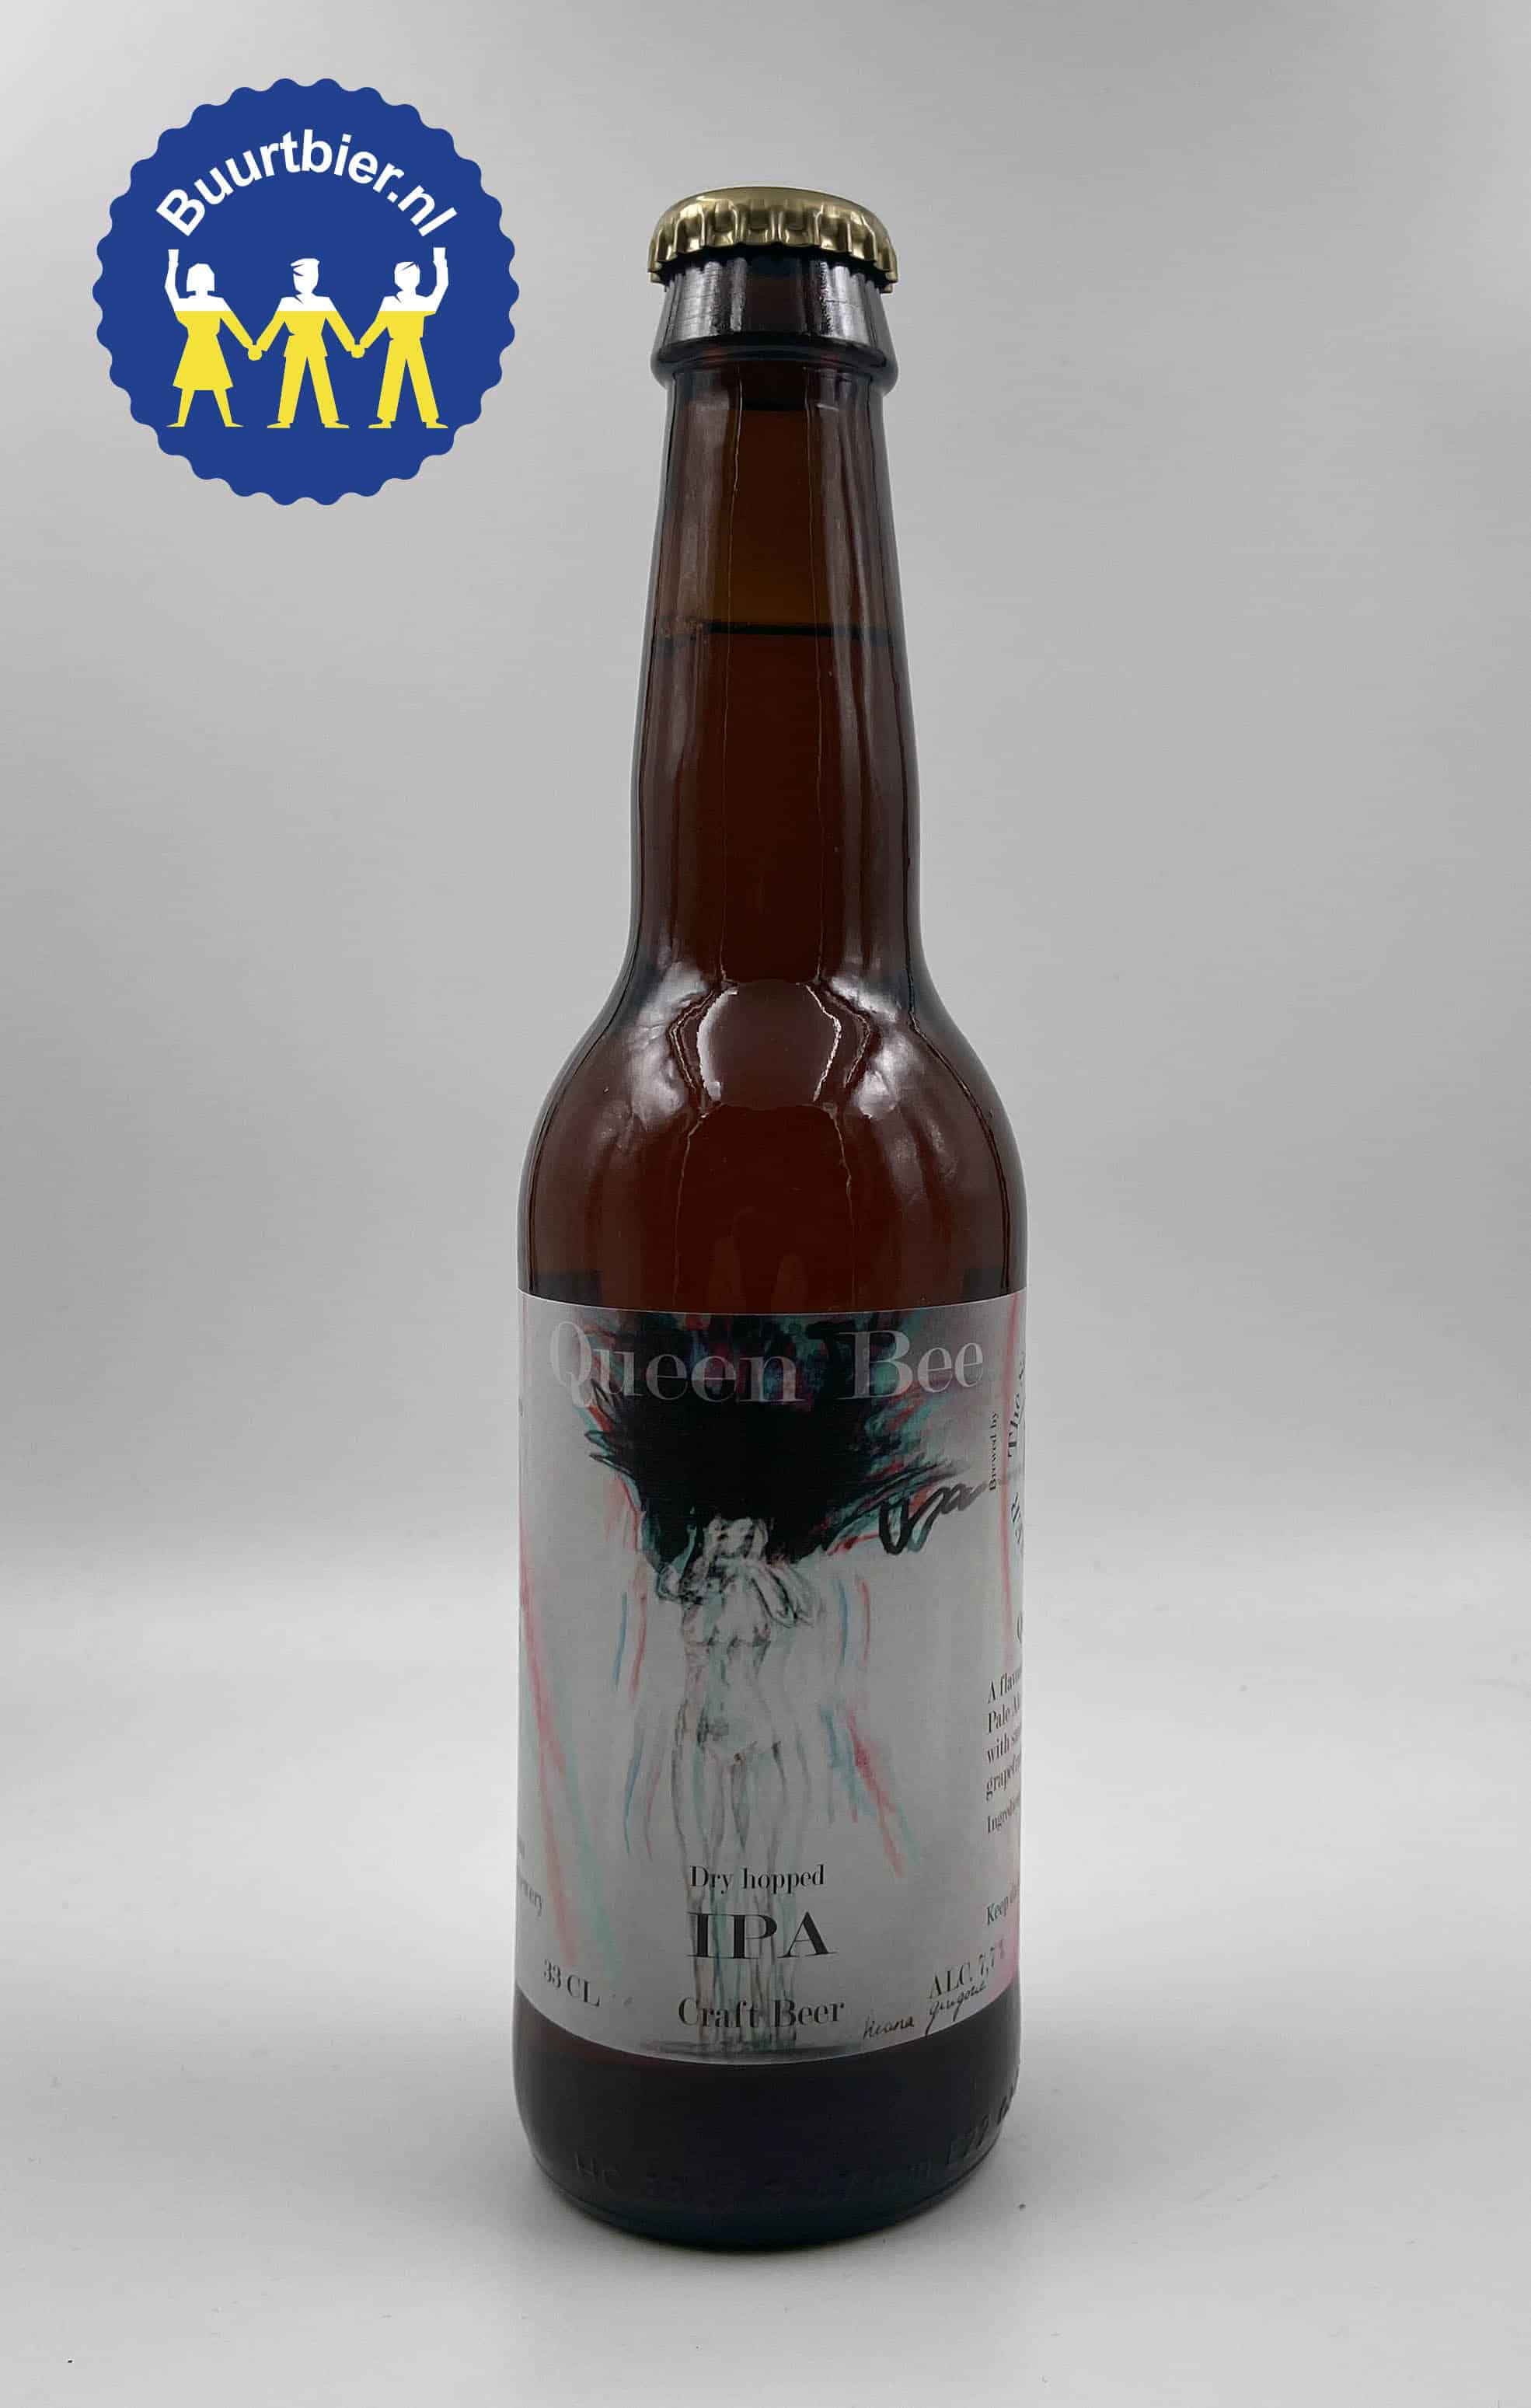 Queen Bee IPA 33cl - The Sisters Brewery